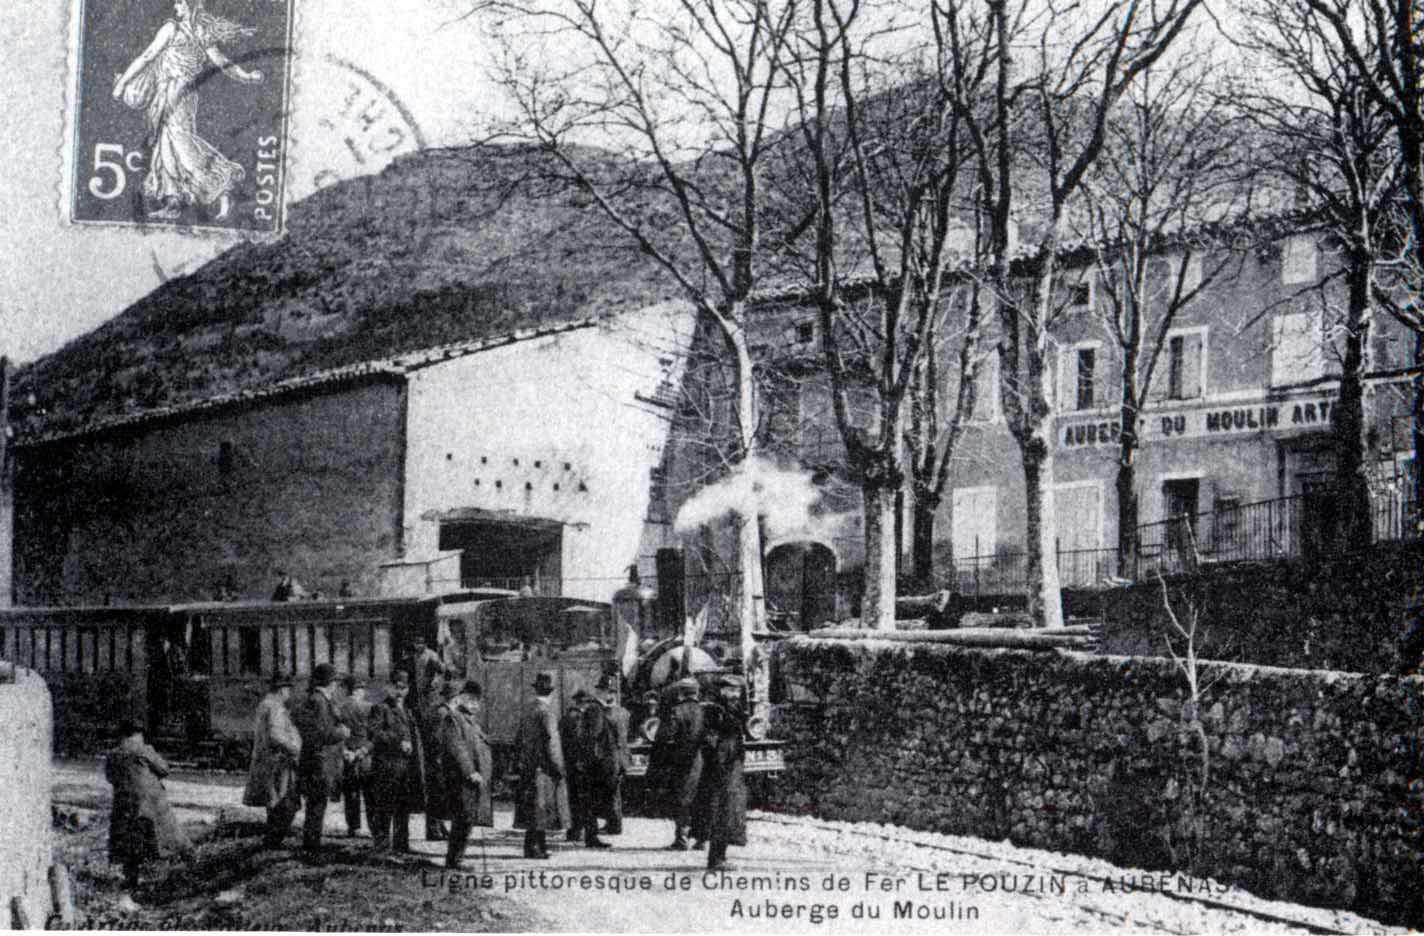 le train au Moulin Artige (entre 1910 et 1914)